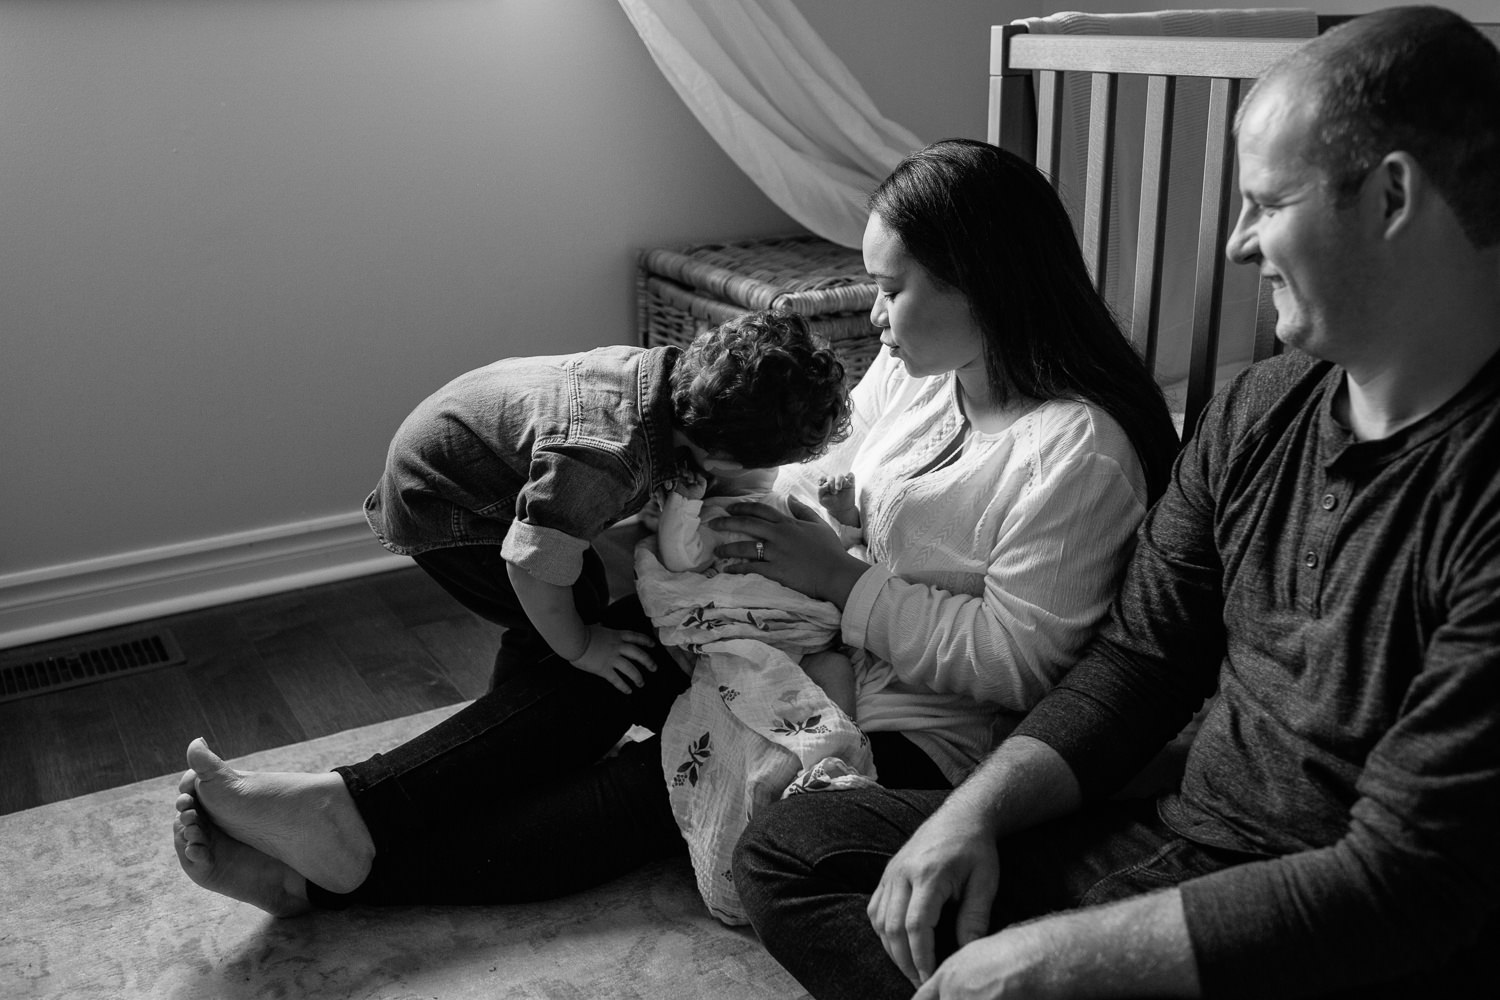 parents sitting on floor of nursery leaning against crib, mom holding 2 week old baby girl in her arms as two year old big brother leans over and kisses little sister - GTA In-Home Photos